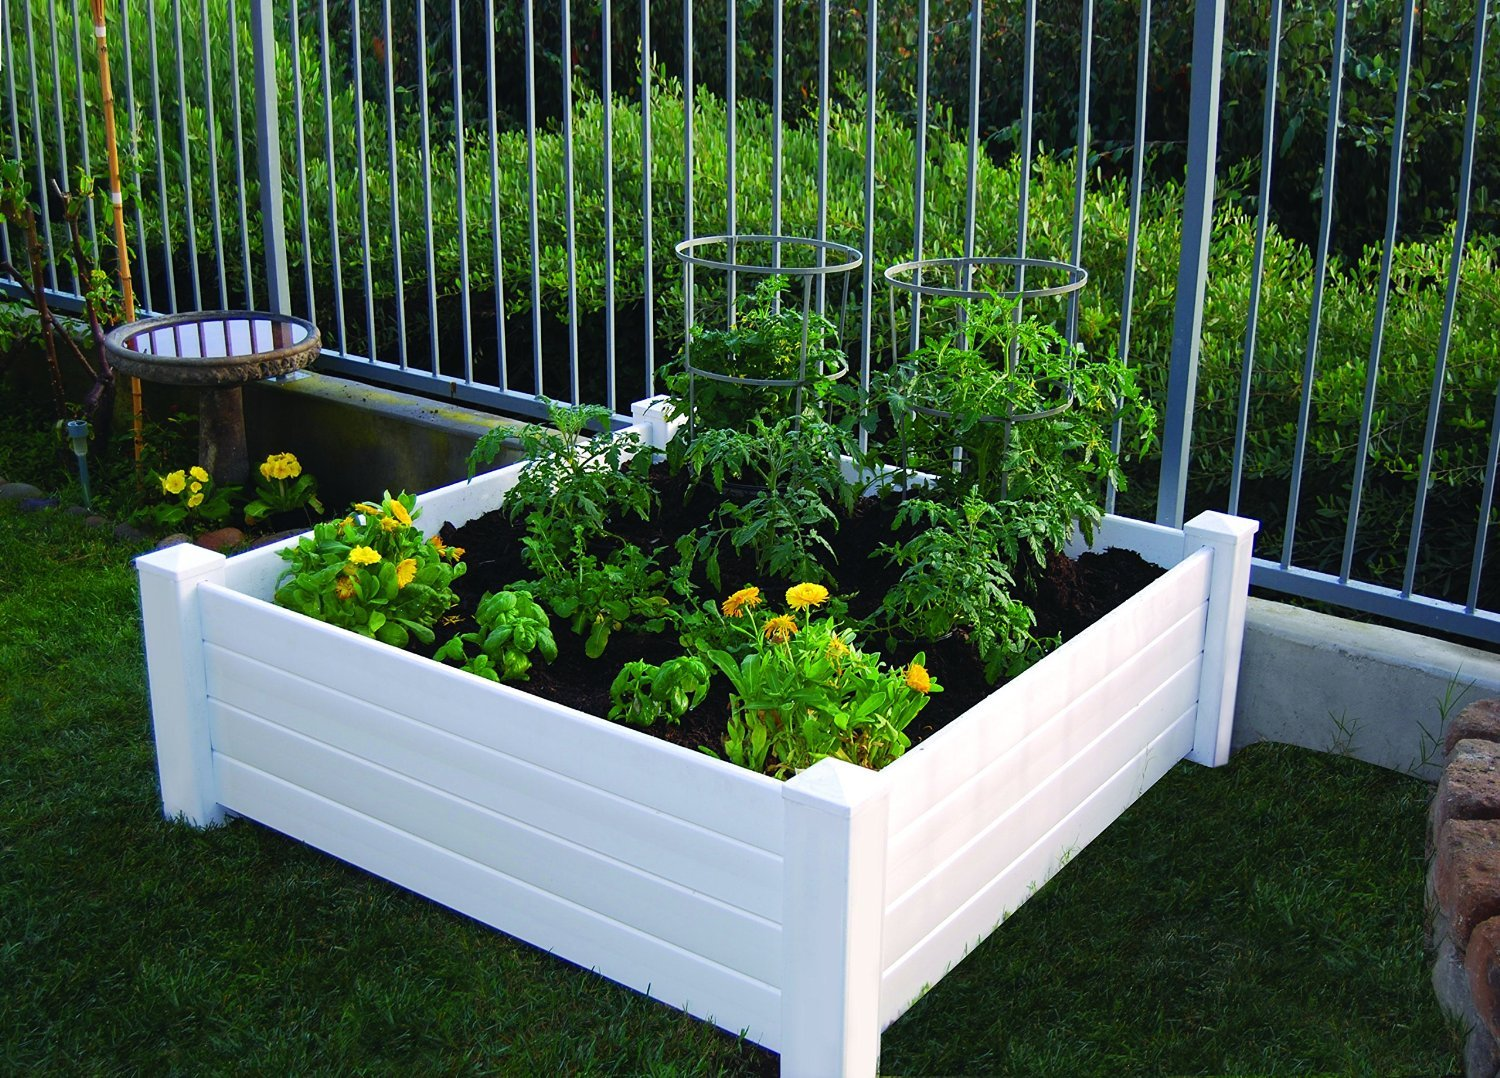 New England Arbors, White Vinyl Raised Garden Bed 2- Pieces Premium White Vinyl. 48'' L X 48'' W X 11'' H Each. Can Be Joined to Create Larger Be by New England Arbors